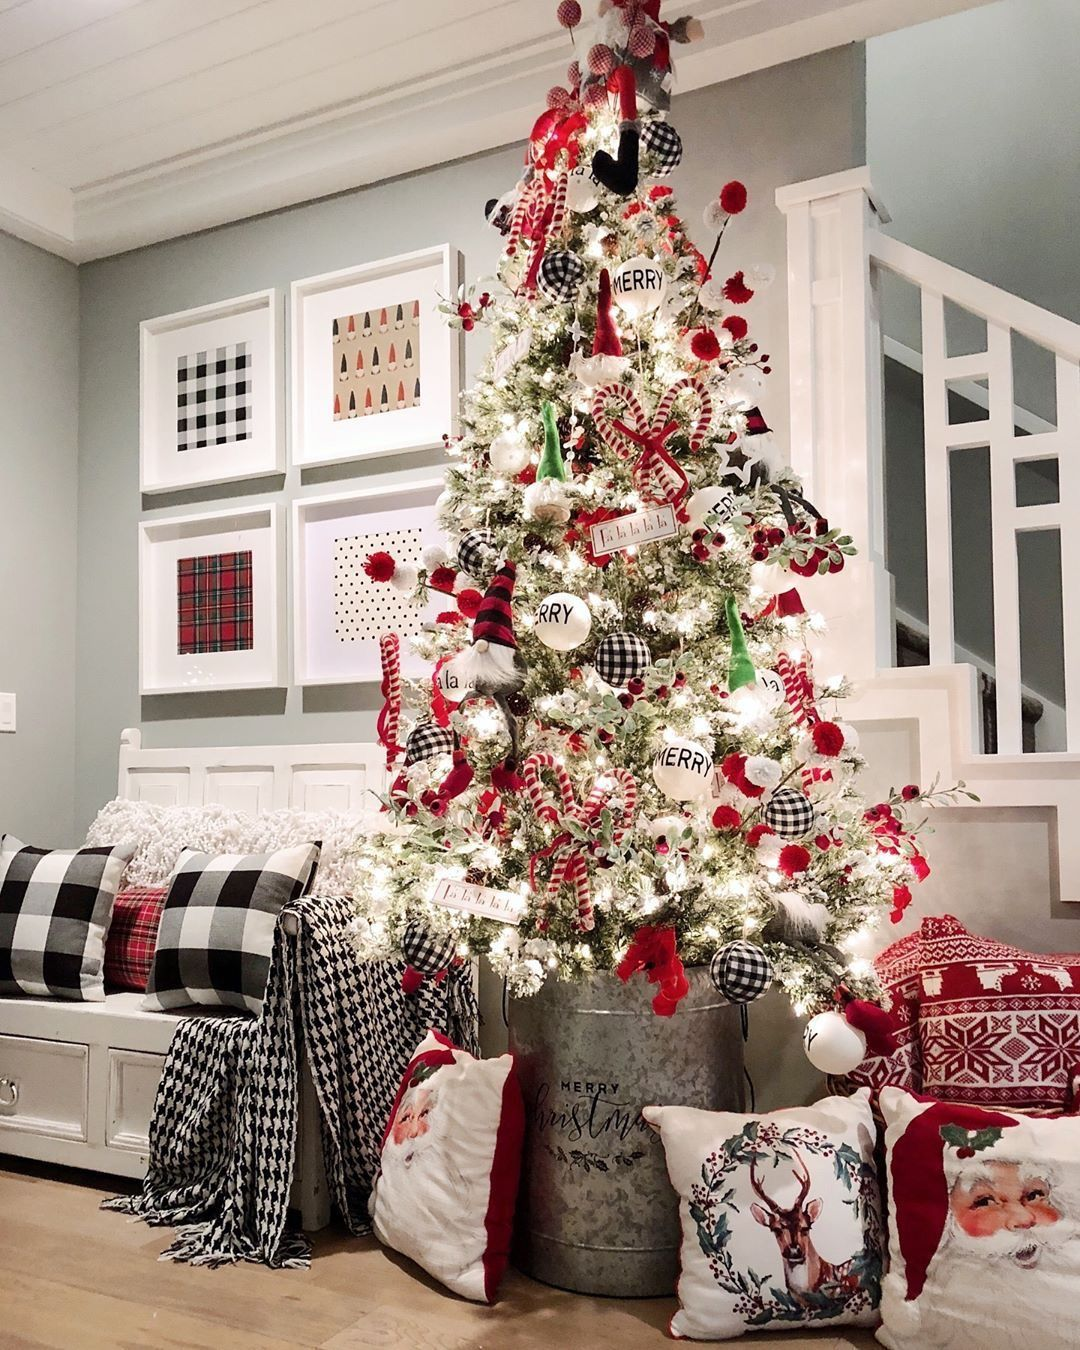 Pin by Tammy Tindol on Christmas in 2020 Christmas tree